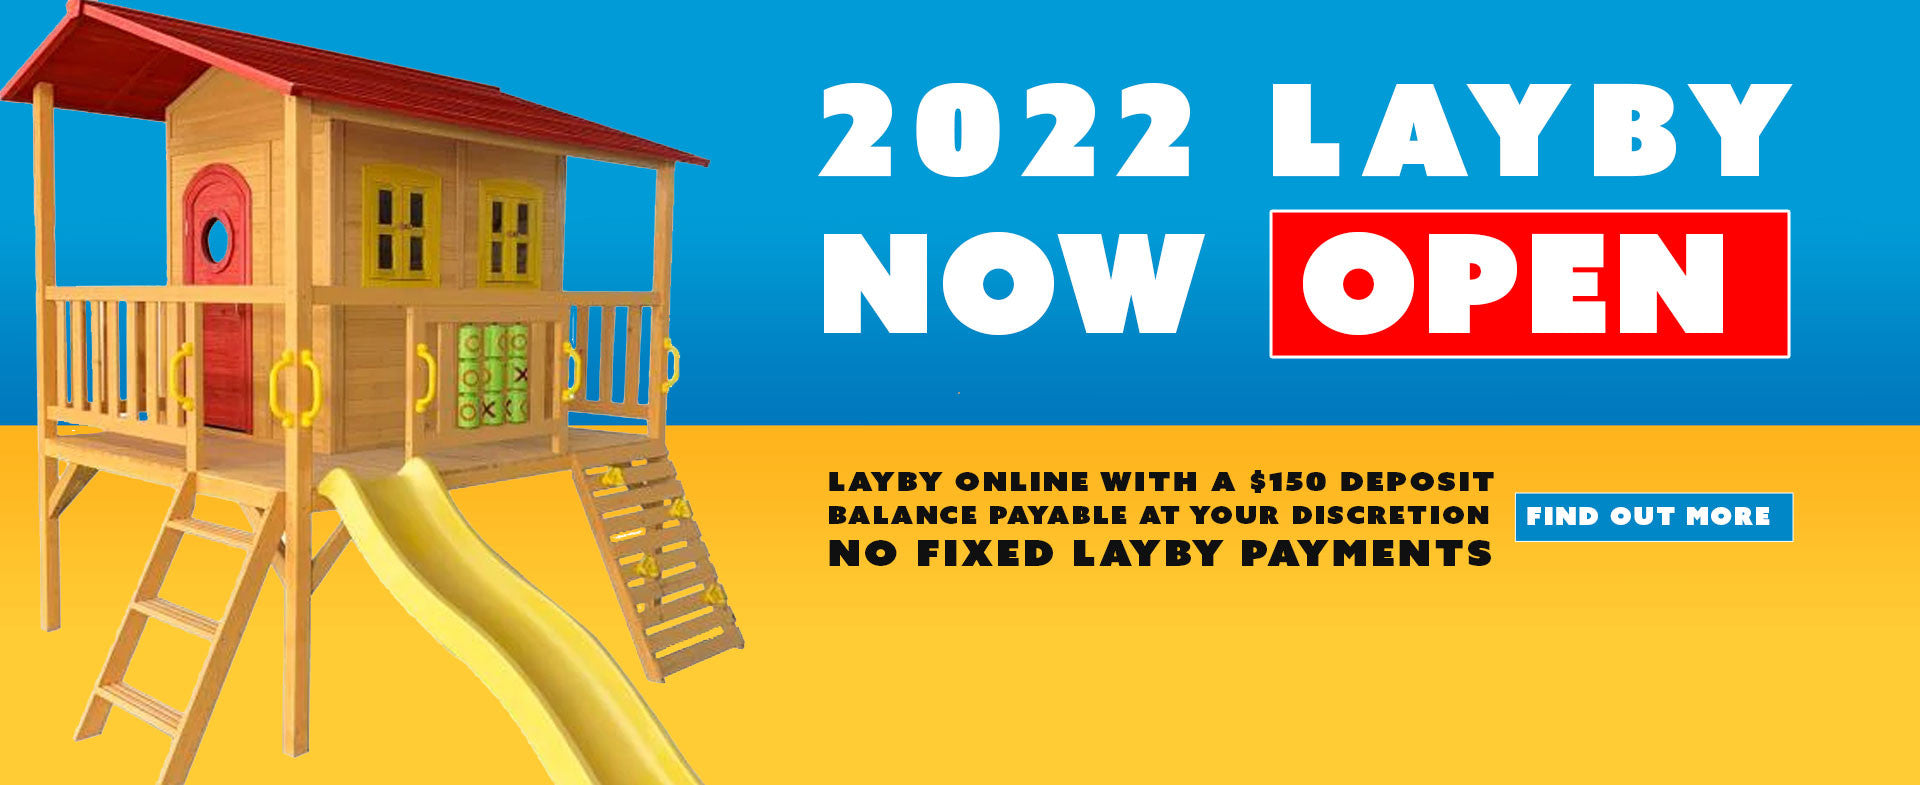 Layby banner for cubby houses